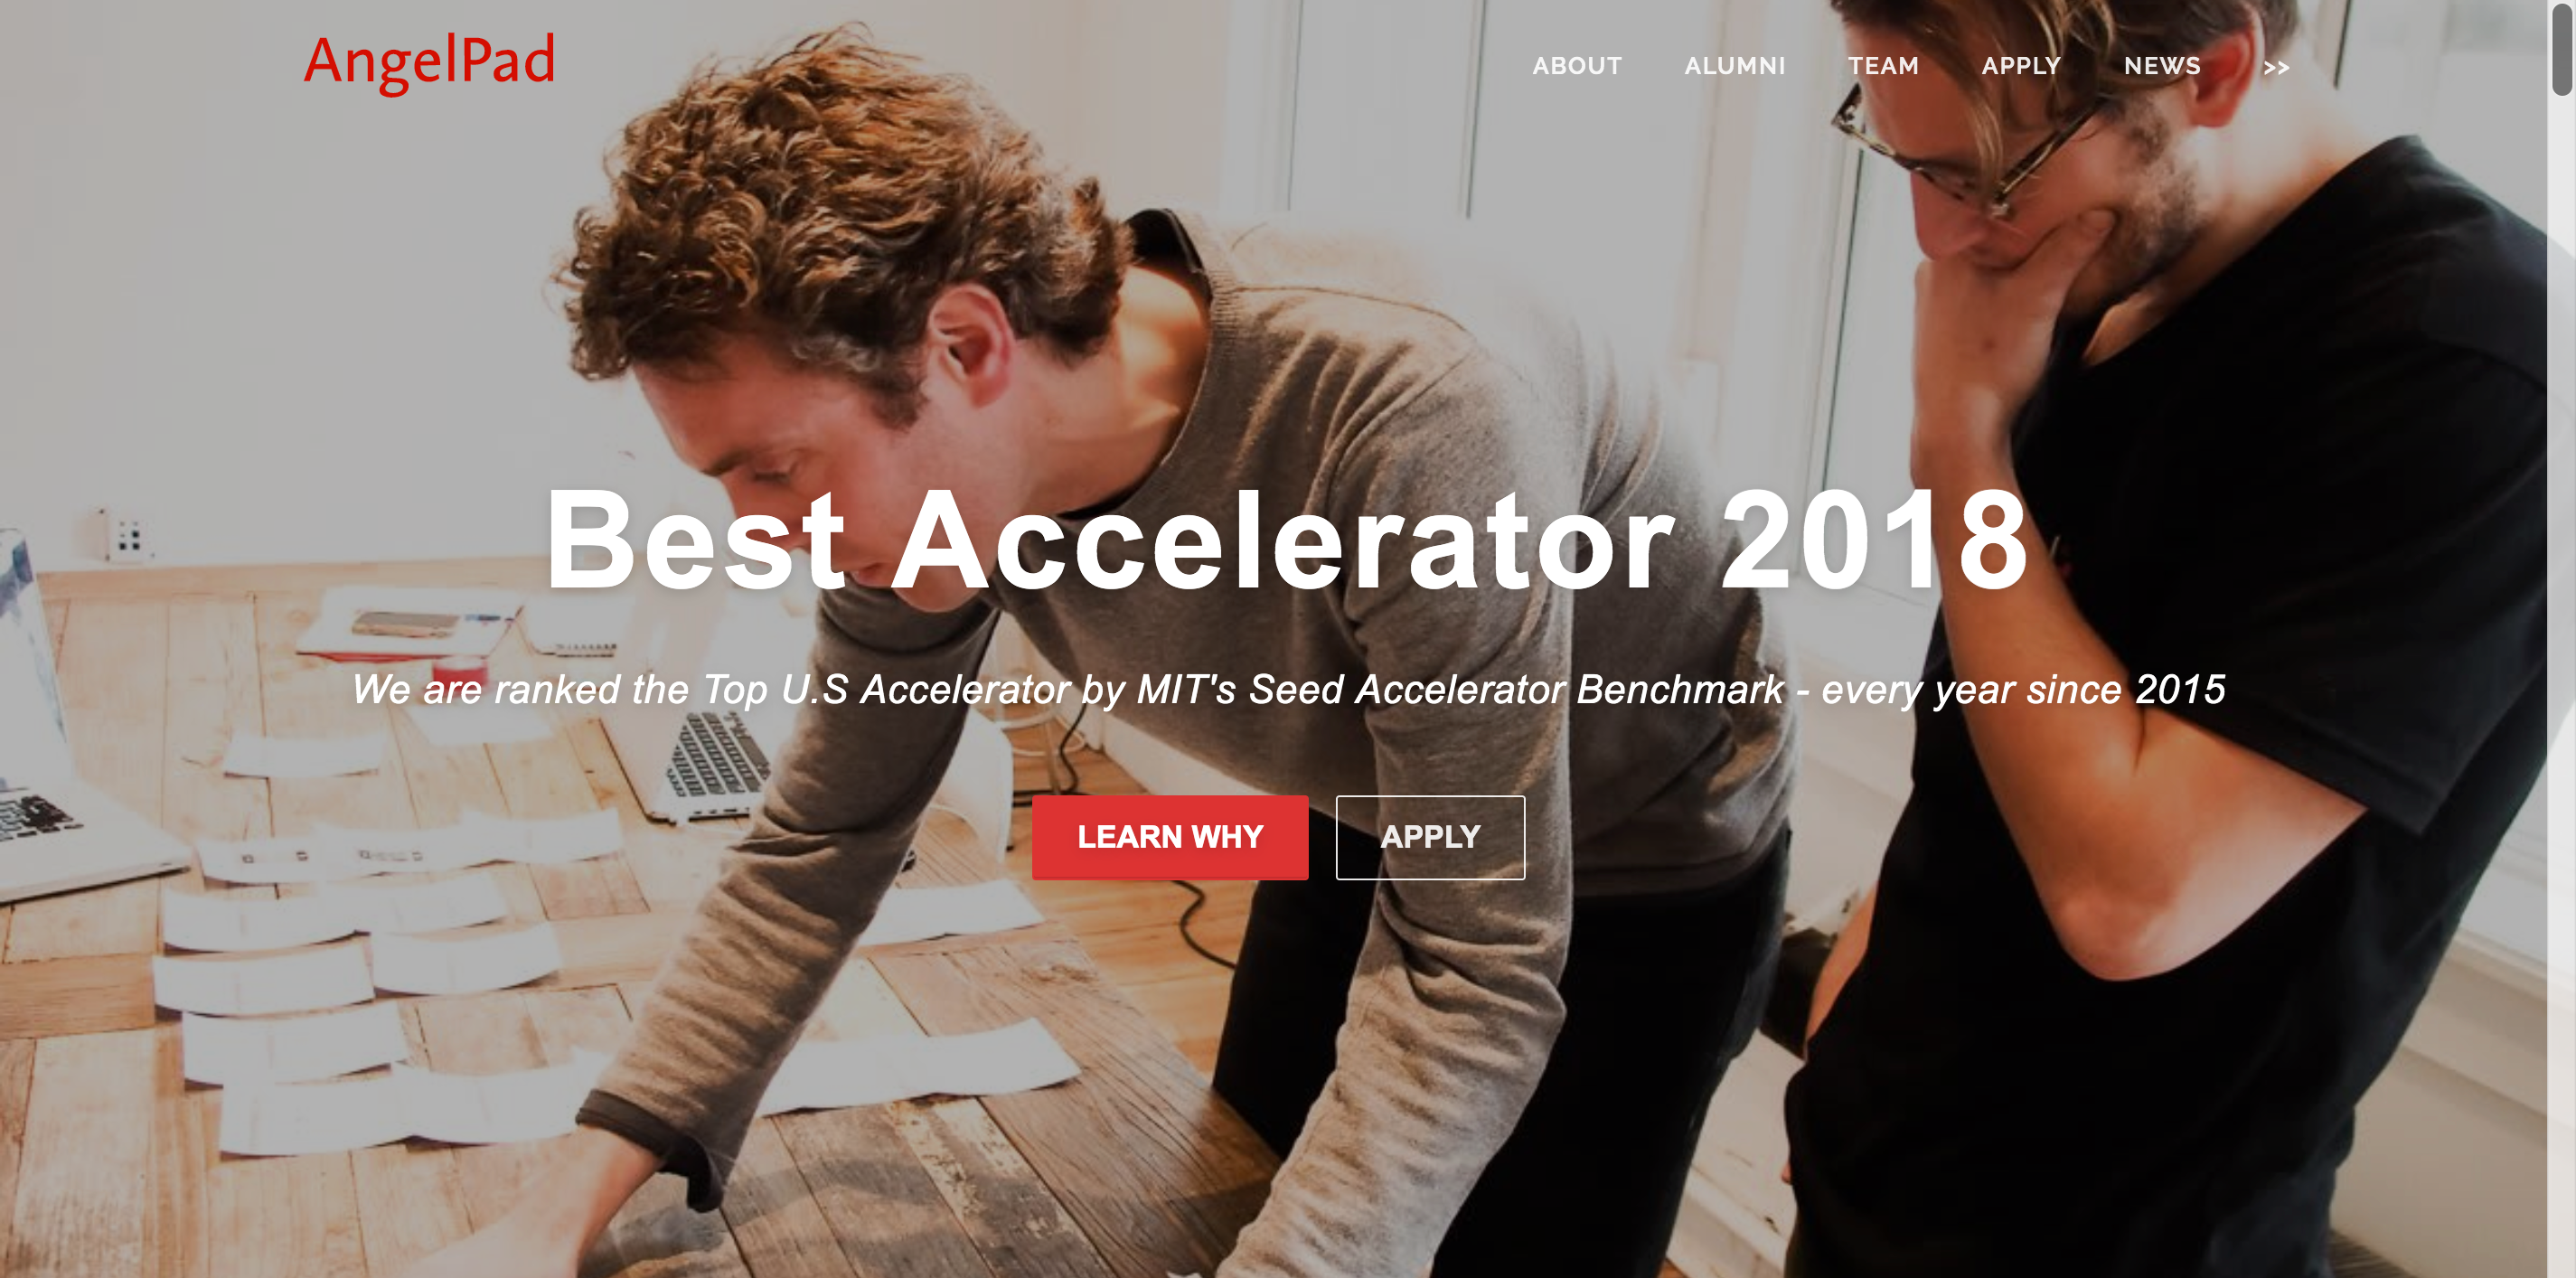 startup accelerators angelpad